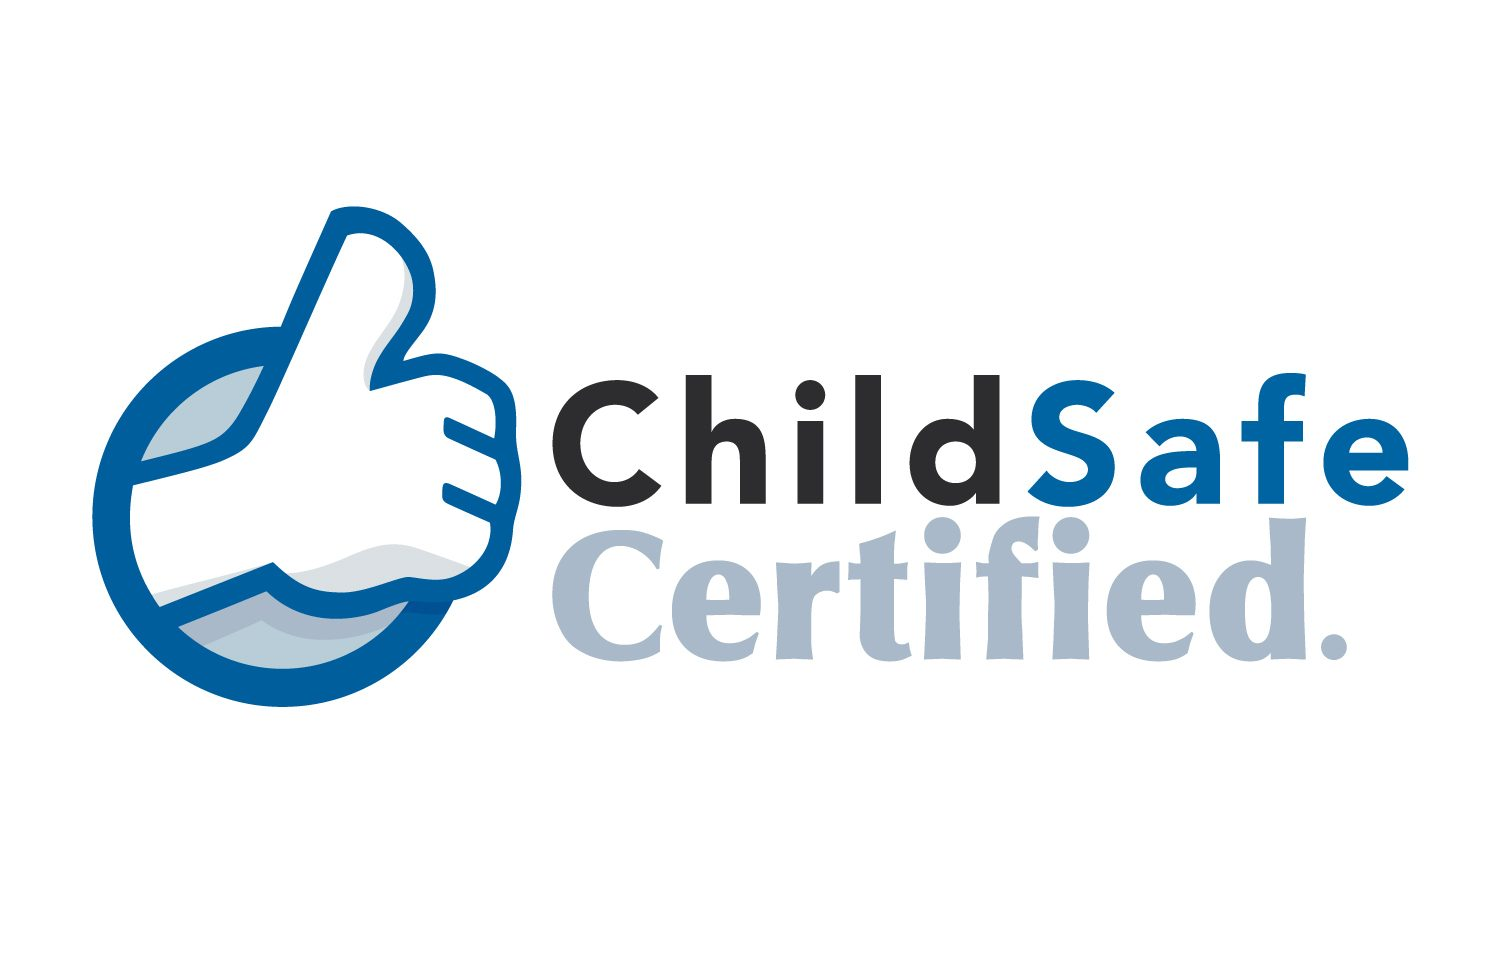 Child Safe Business Certified Final H